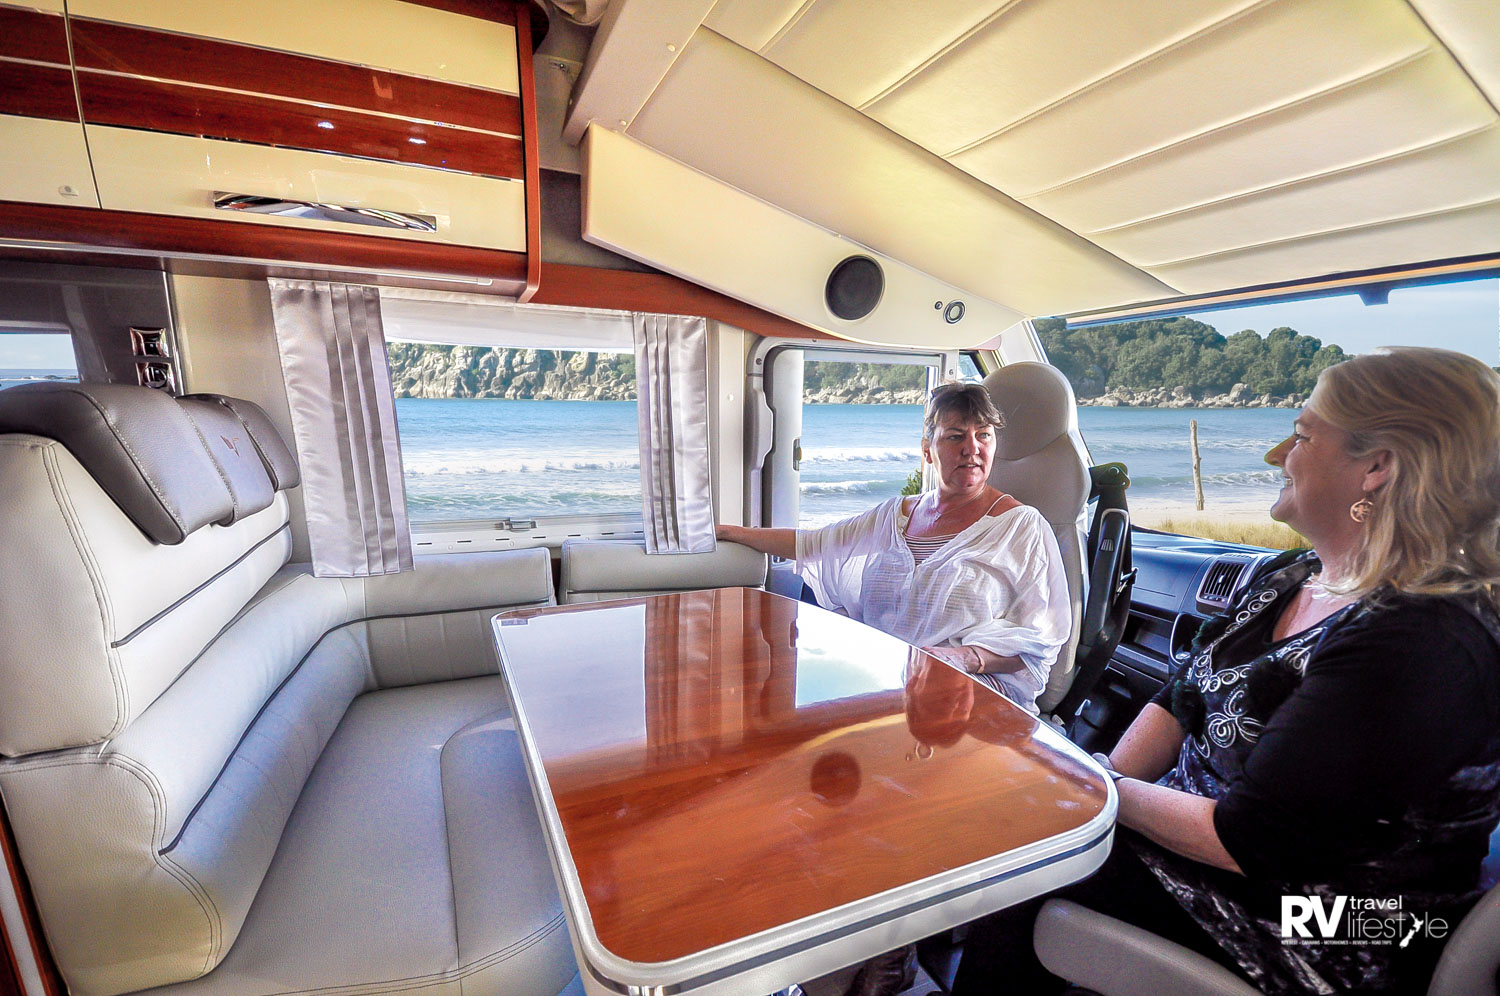 Mobilvetta – the front-cab seats swivel to face the dining area; above them in the ceiling line is a second pull-down bed. This front and cab area is standard across the three models, i.e. the fixed bedroom, single bed and L-shaped rear-lounge ceiling bed